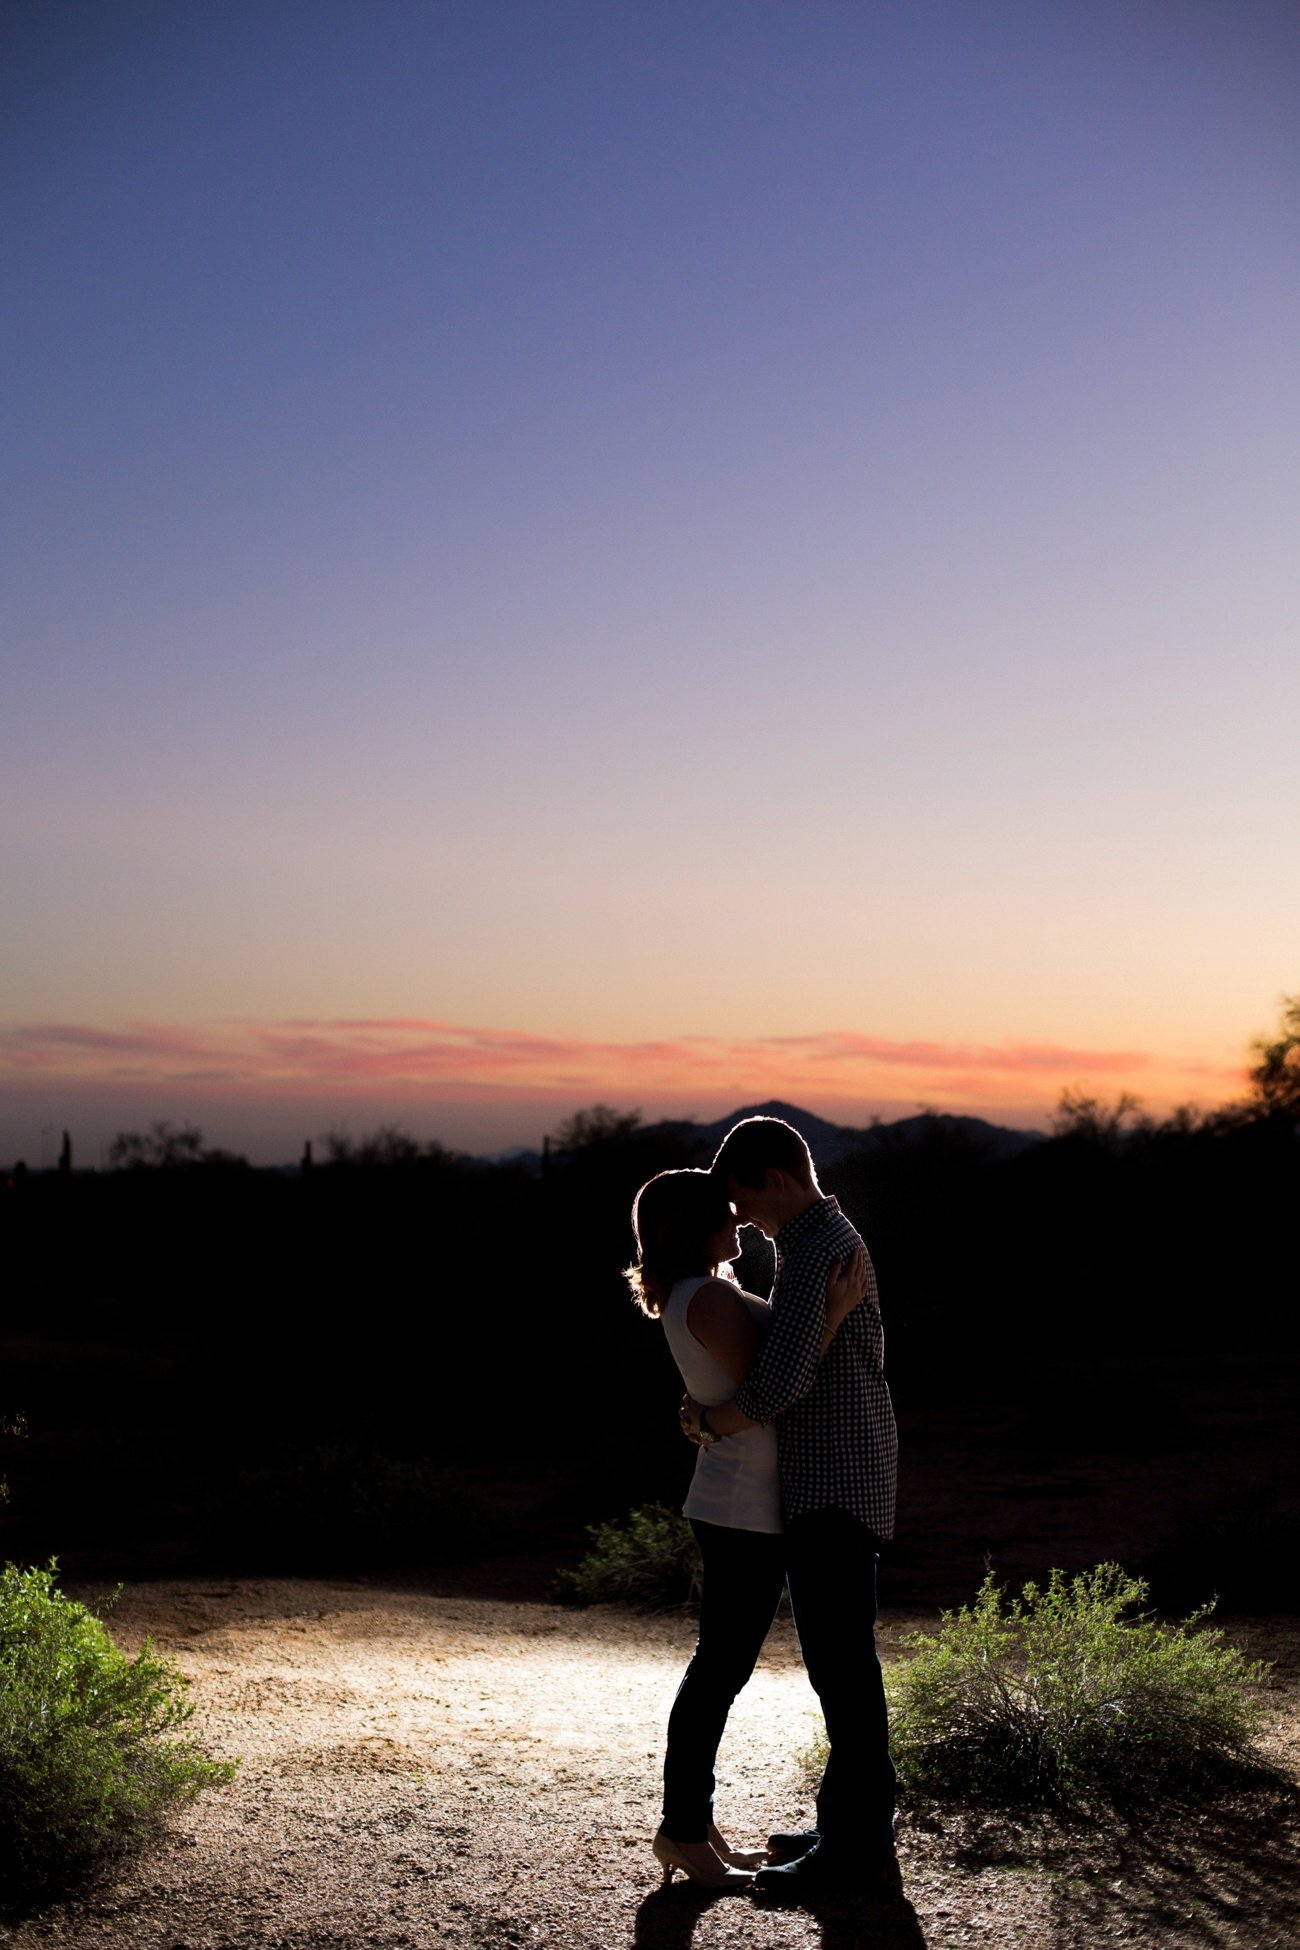 Engagements Colorado Springs Engagement Photographer Wedding Photos Pictures Portraits Arizona CO Denver Manitou Springs Scottsdale AZ 2016-06-27_0072